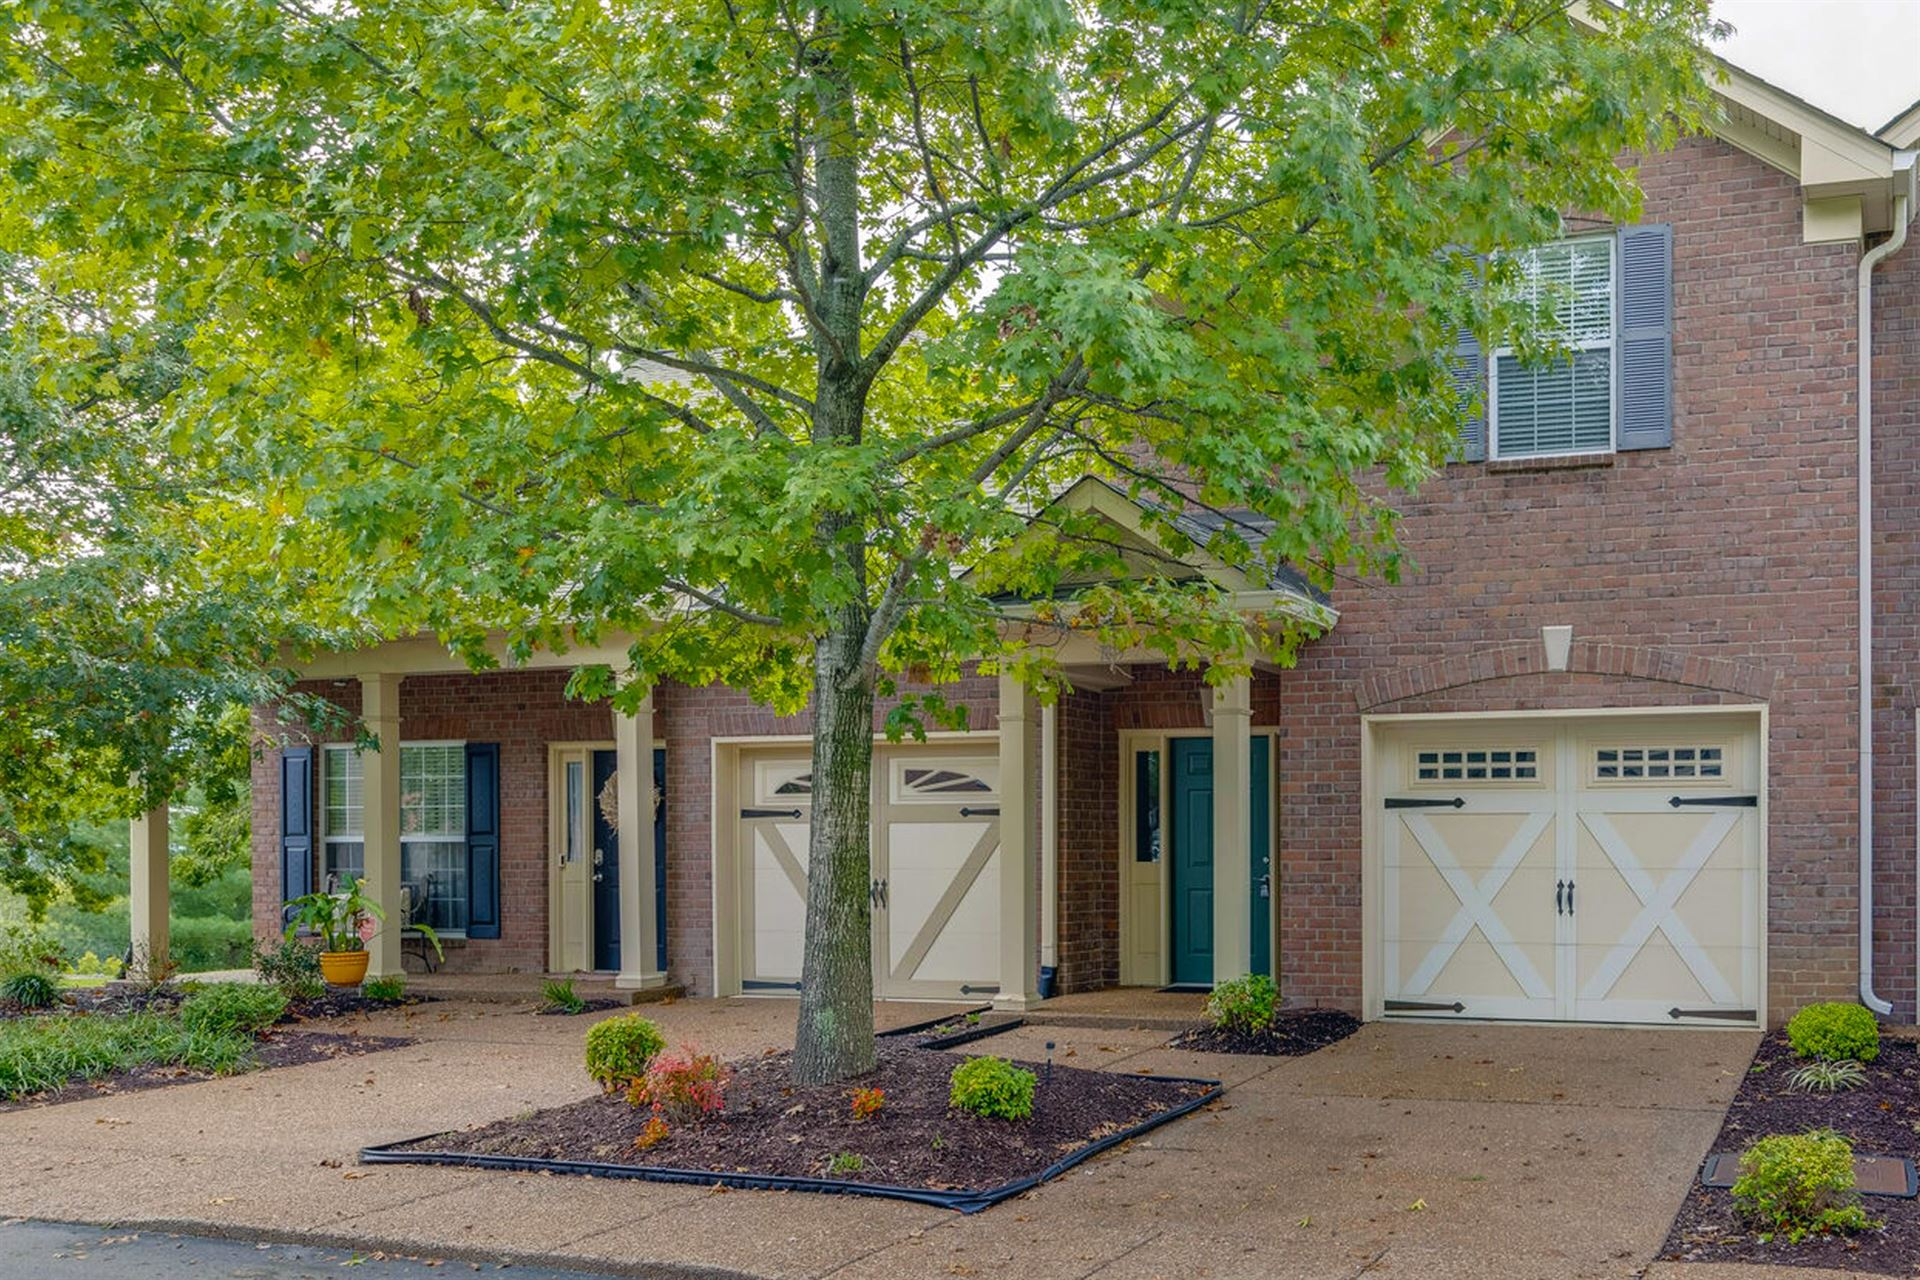 Photo of 1819 Brentwood Pointe, Franklin, TN 37067 (MLS # 2299107)